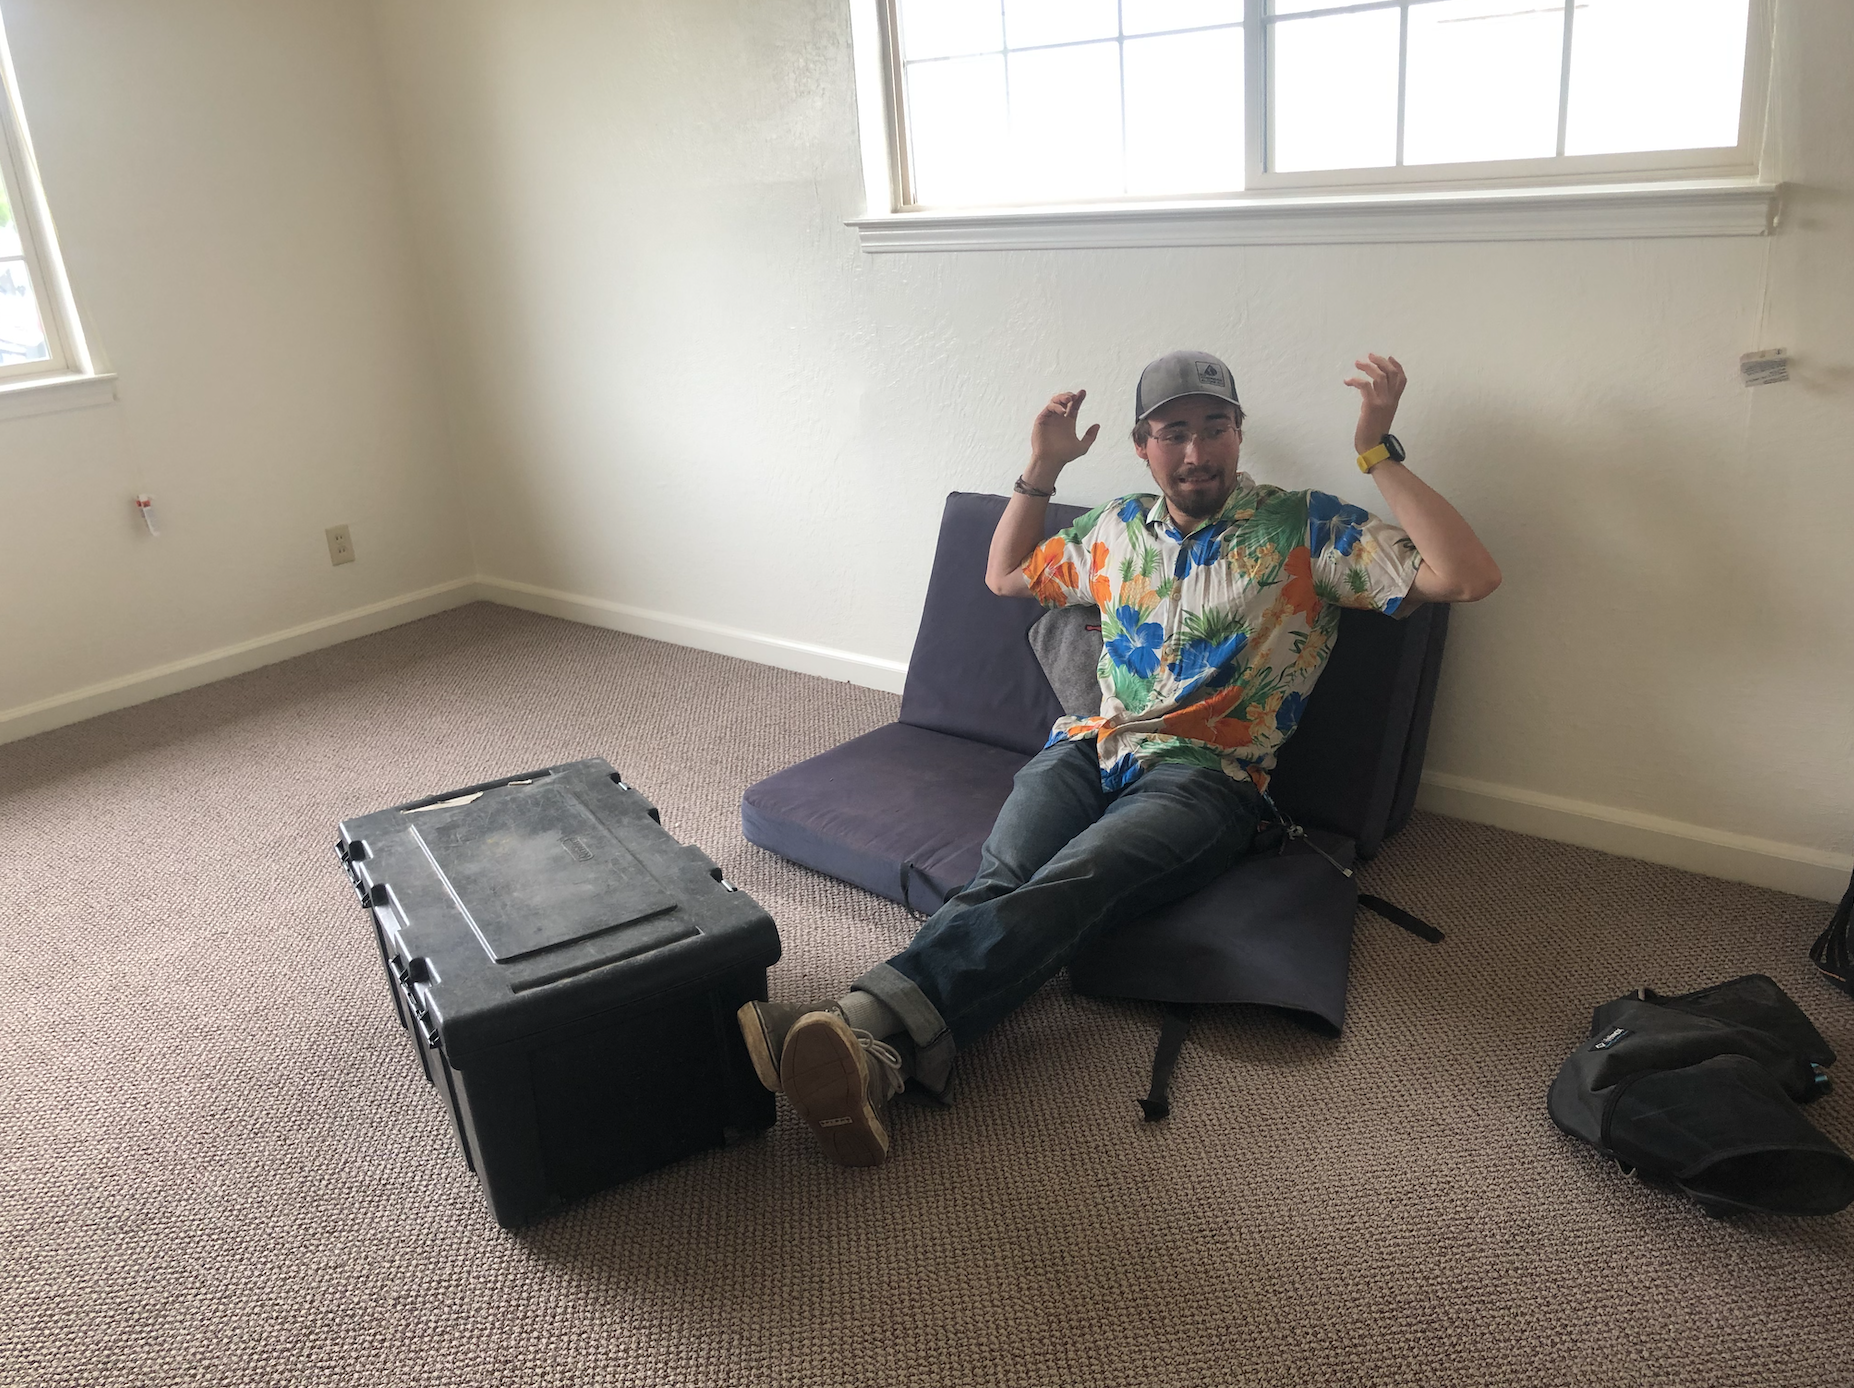 Mike in the new house